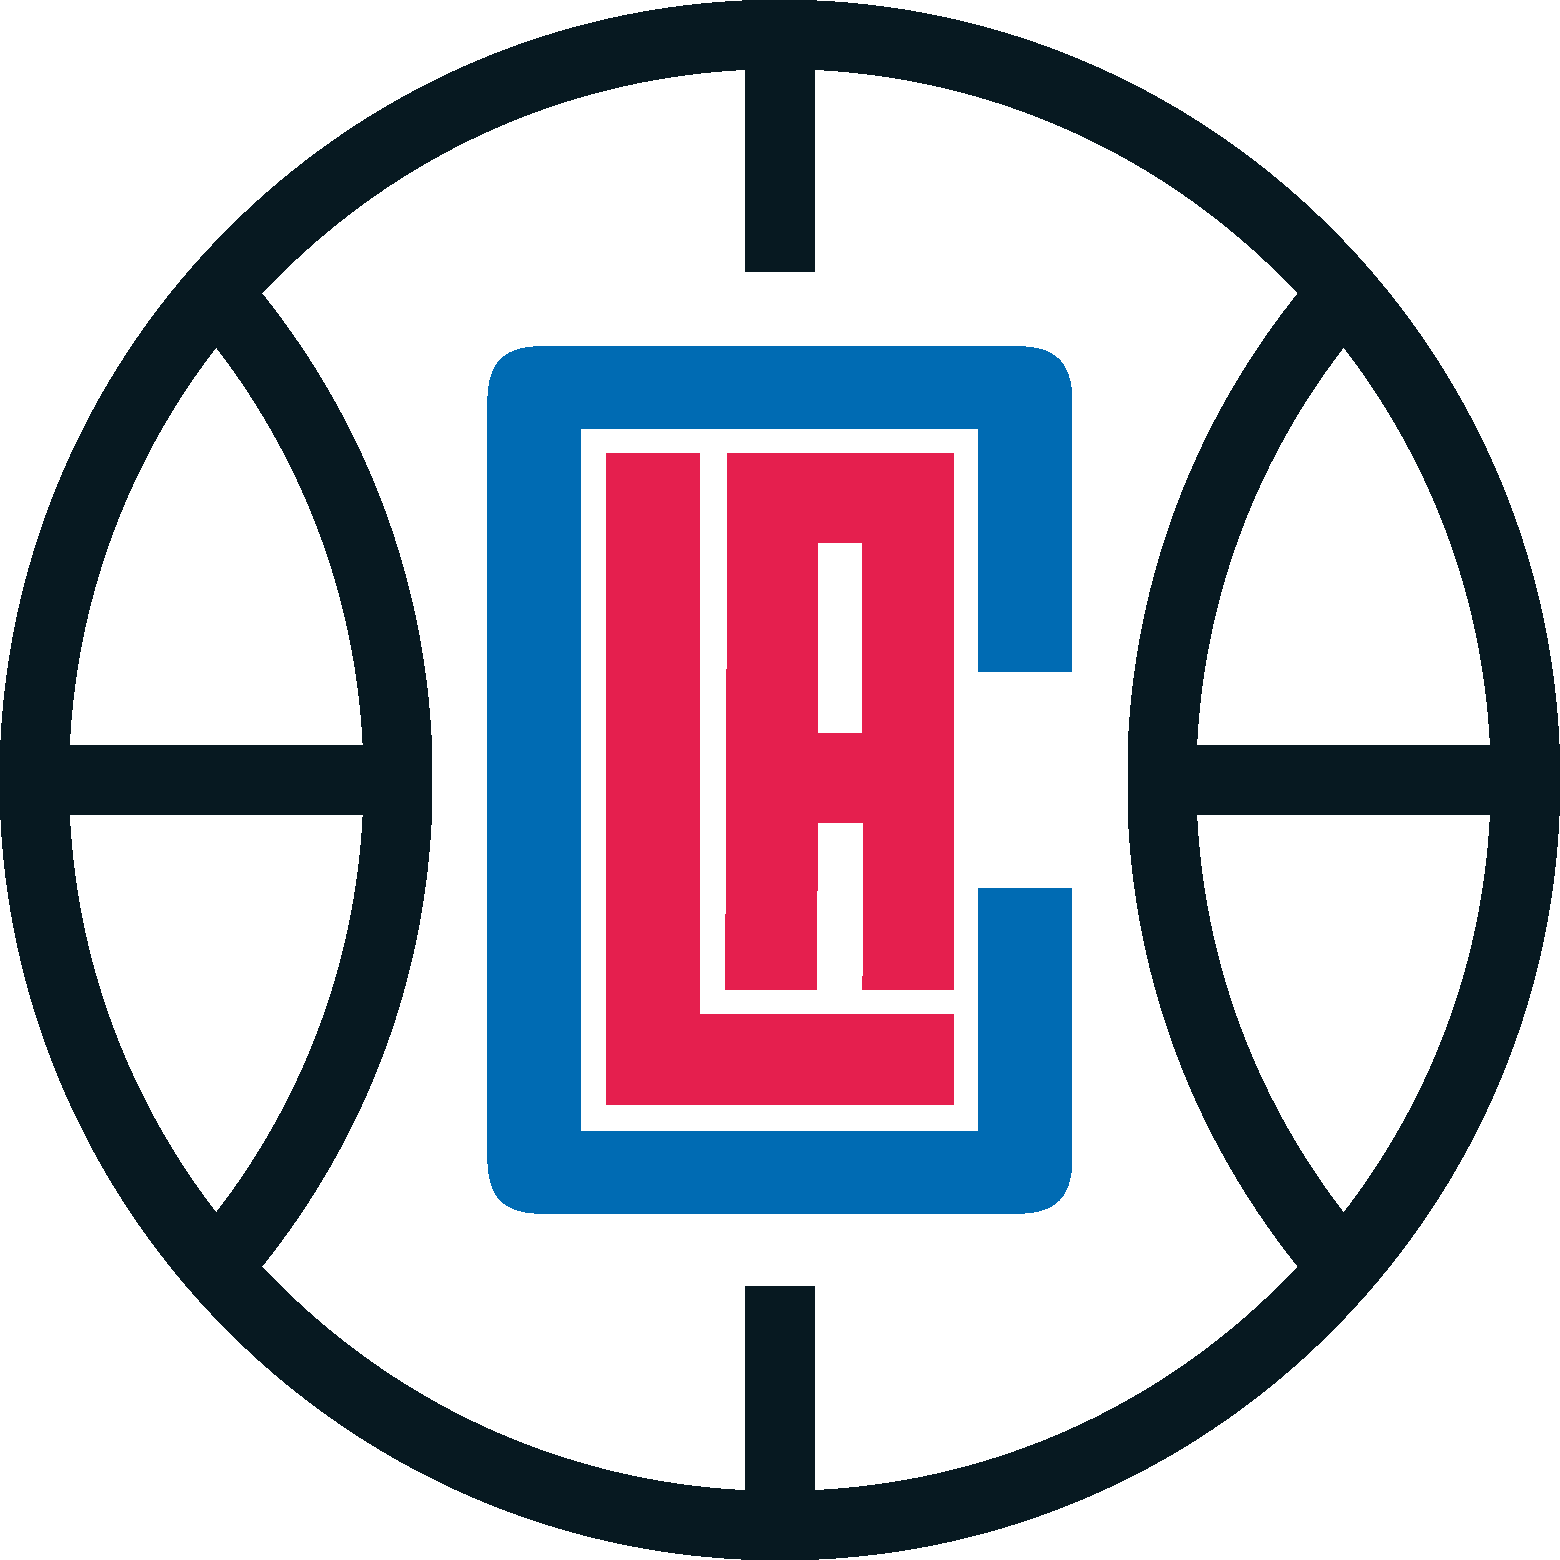 Clippers Logo Los Angeles Clippers Los Angeles Clippers Logos Nba Funny